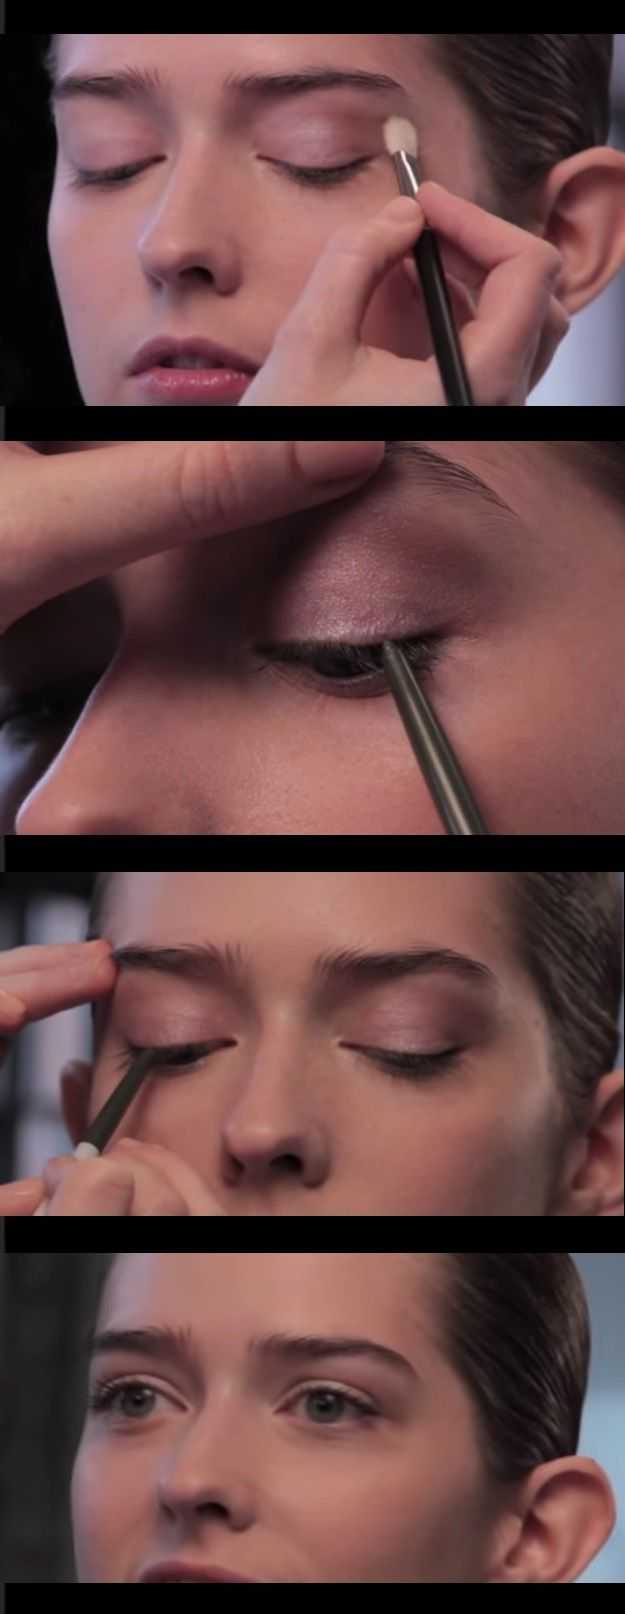 32 Best Makeup Tips for Deep Set Eyes - Eye Makeup Tutorial For Deep Set Eyes | COVERGIRL - Easy tutorials on how to apply make up for deep set eyes - Great natural looks for the wedding, dark looks with eyeshadows and products like Urban Decay - Great cut crease looks for different brows and different hair colors - thegoddess.com/makeup-tips-deep-set-eyes